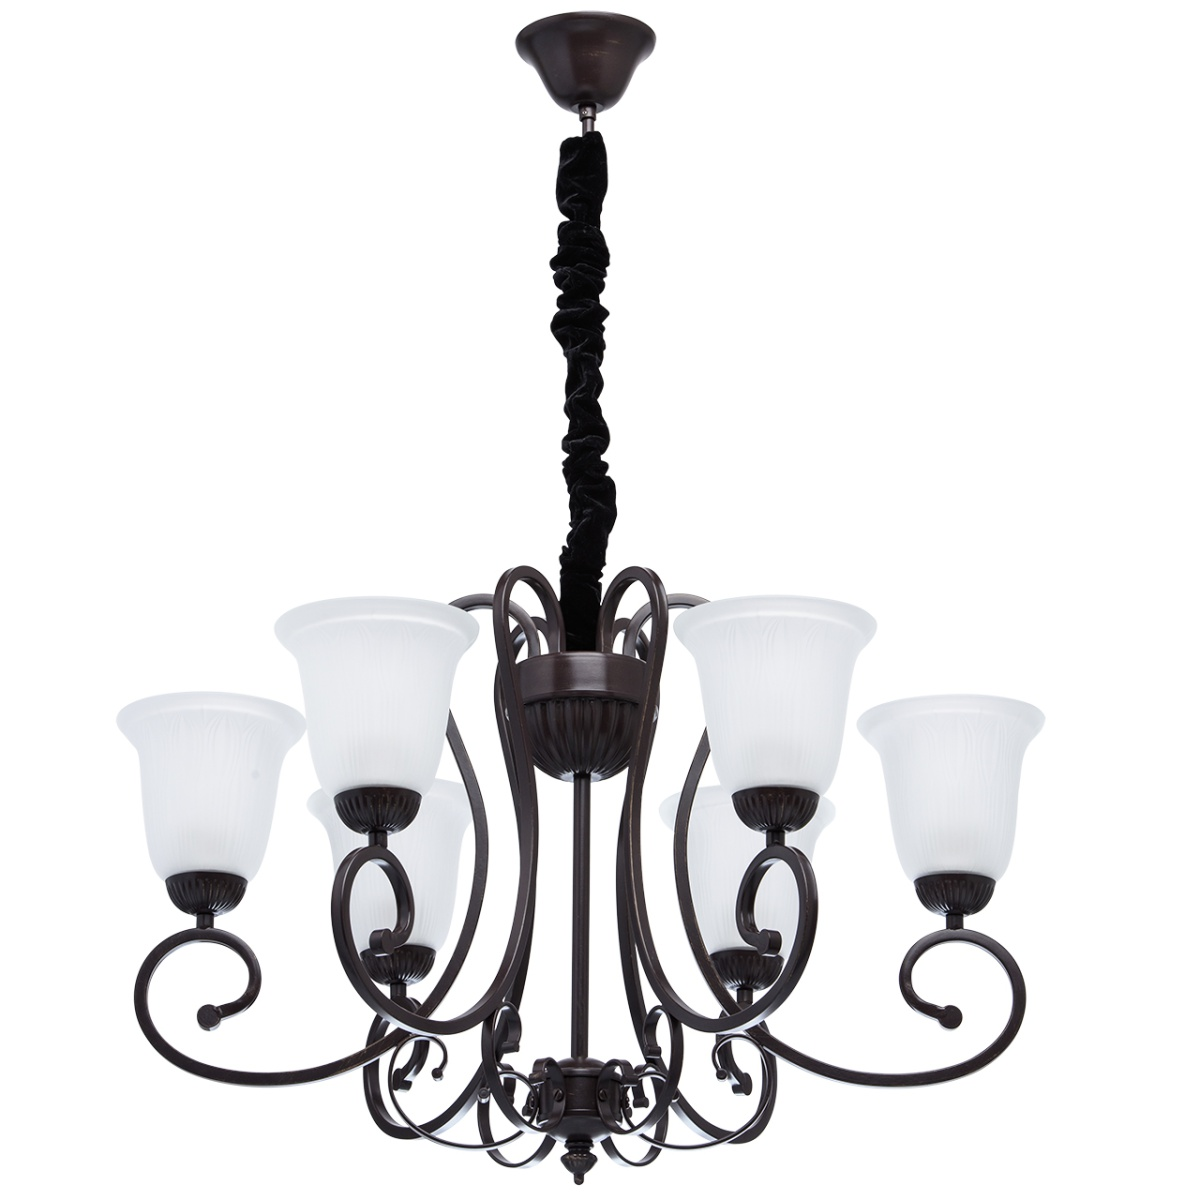 Candelabru MW-Light Country 444011506 title=Candelabru MW-Light Country 444011506